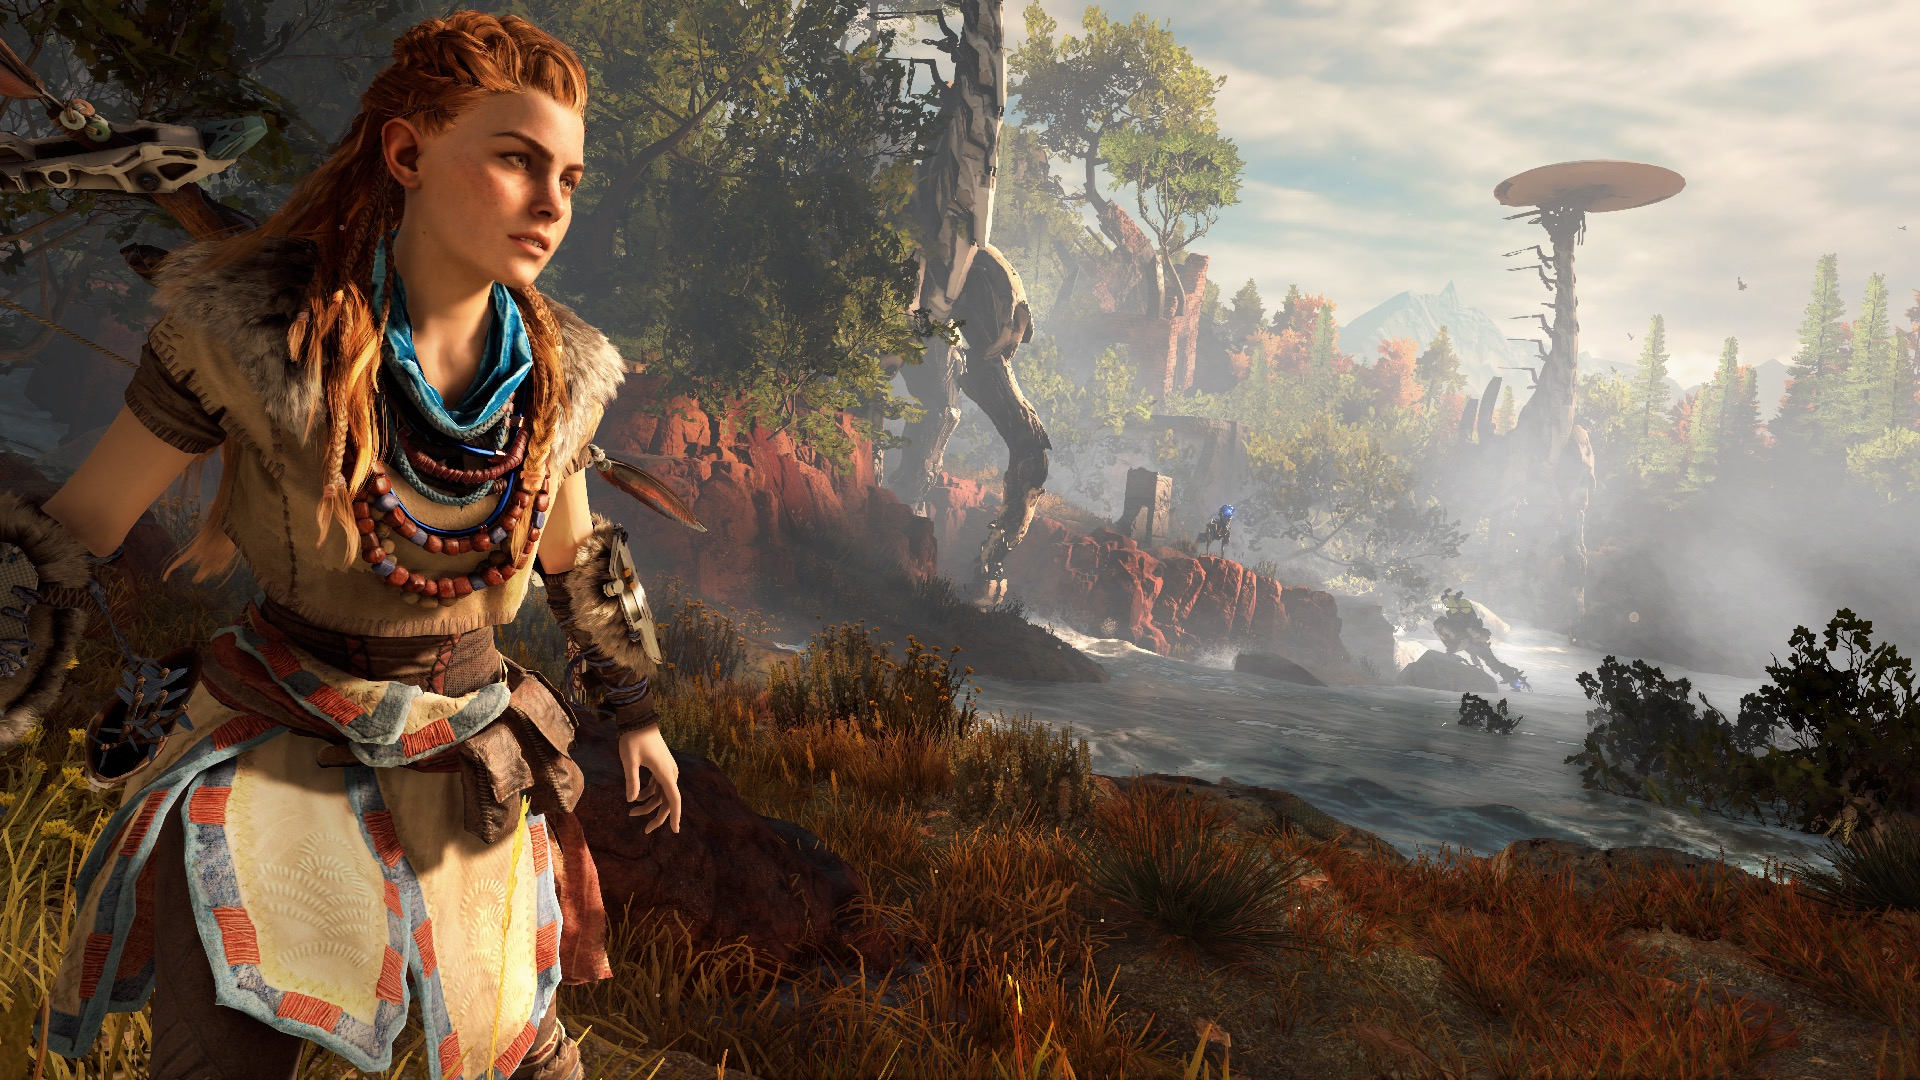 Patience is not a trait that most gamers have these days. In Horizon: Zero Dawn patience is essential.